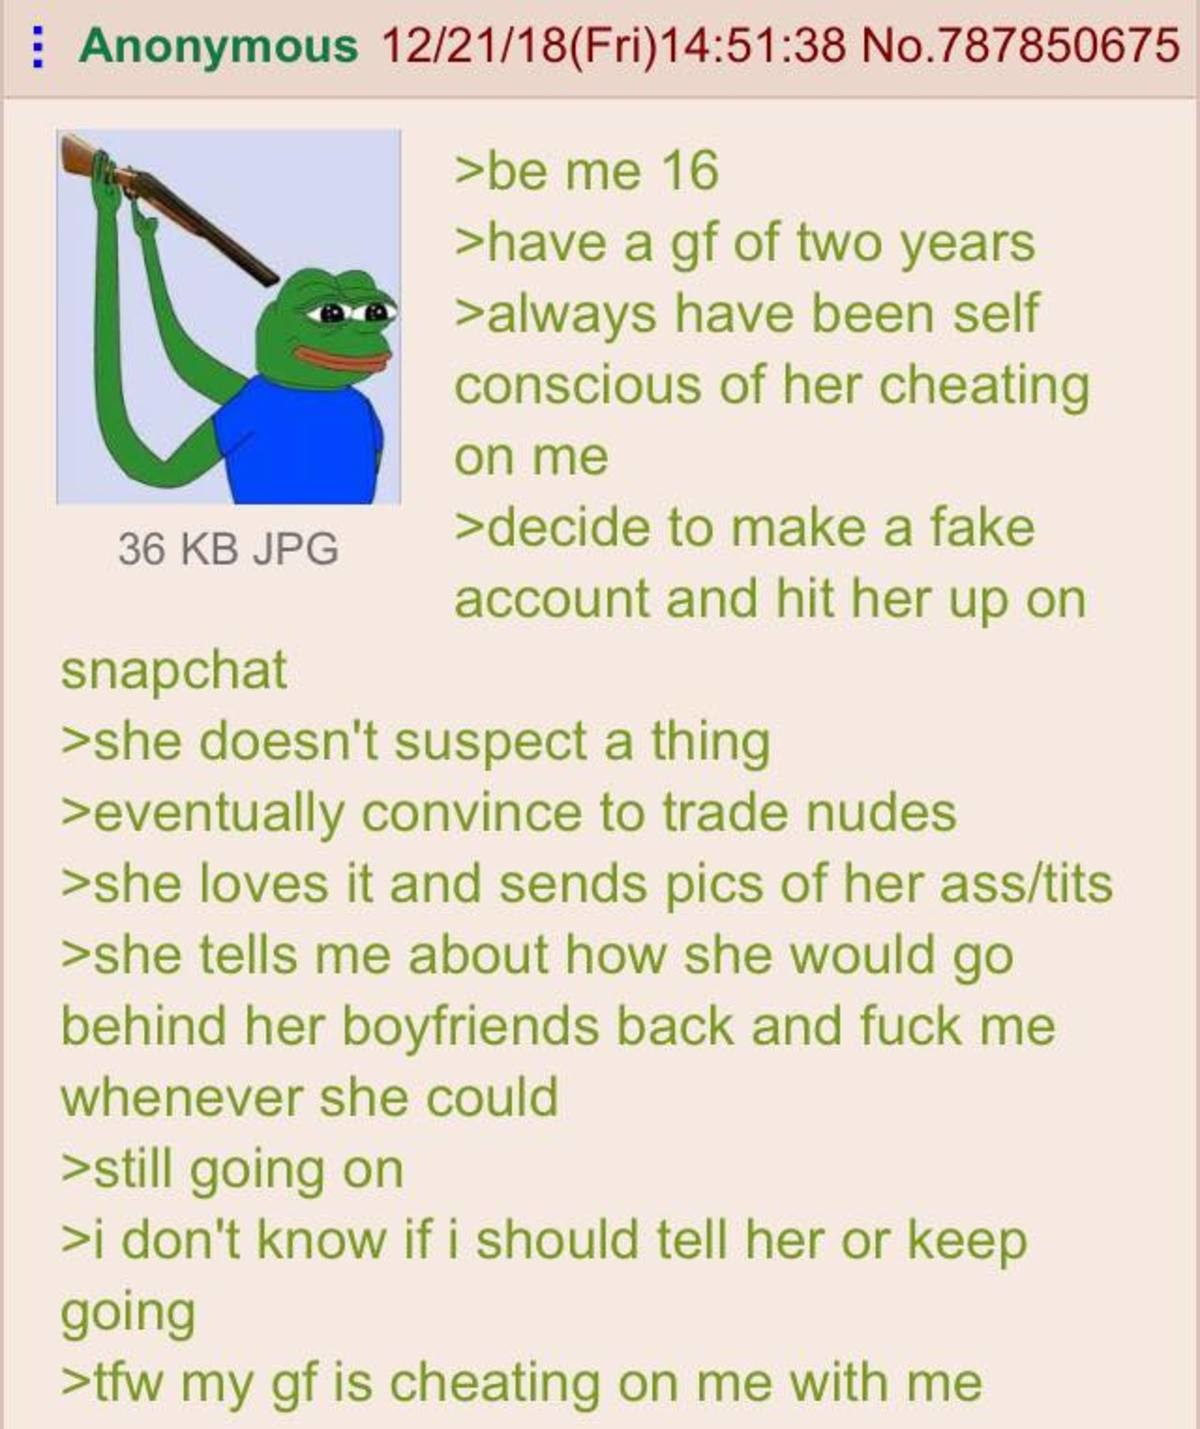 Anon has a Girlfriend. .. Make her fall in love with imposter you, but contact her less and less. Have real you break up with her shortly after. Imposter you eventually ghosts her. Leave